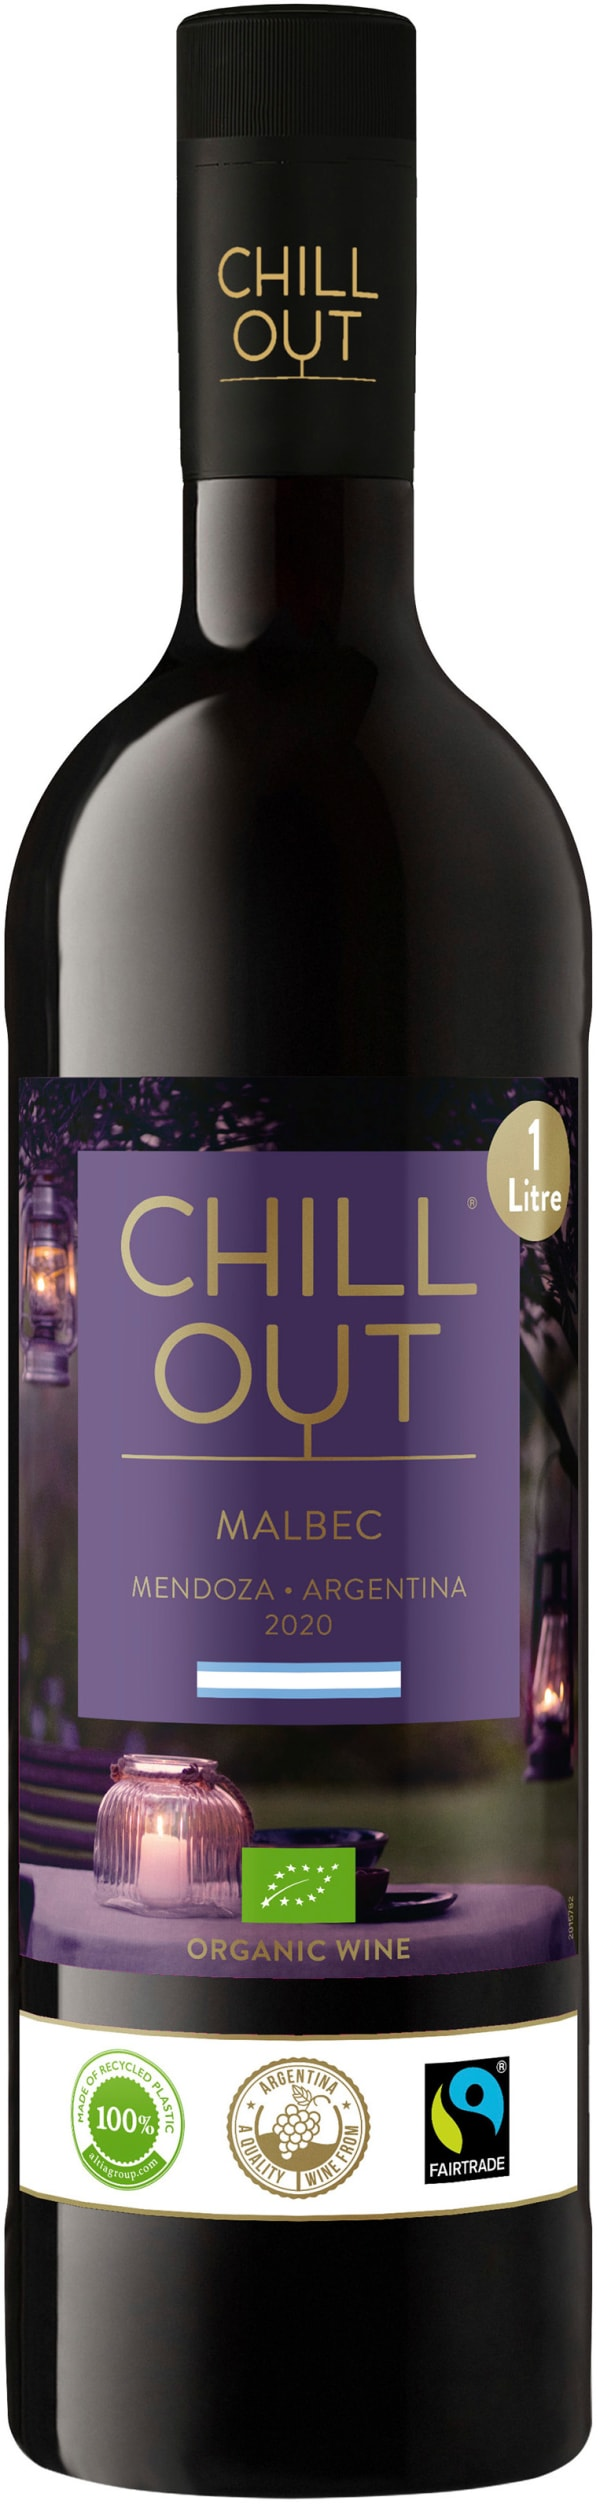 Chill Out Malbec Argentina 2017 plastic bottle